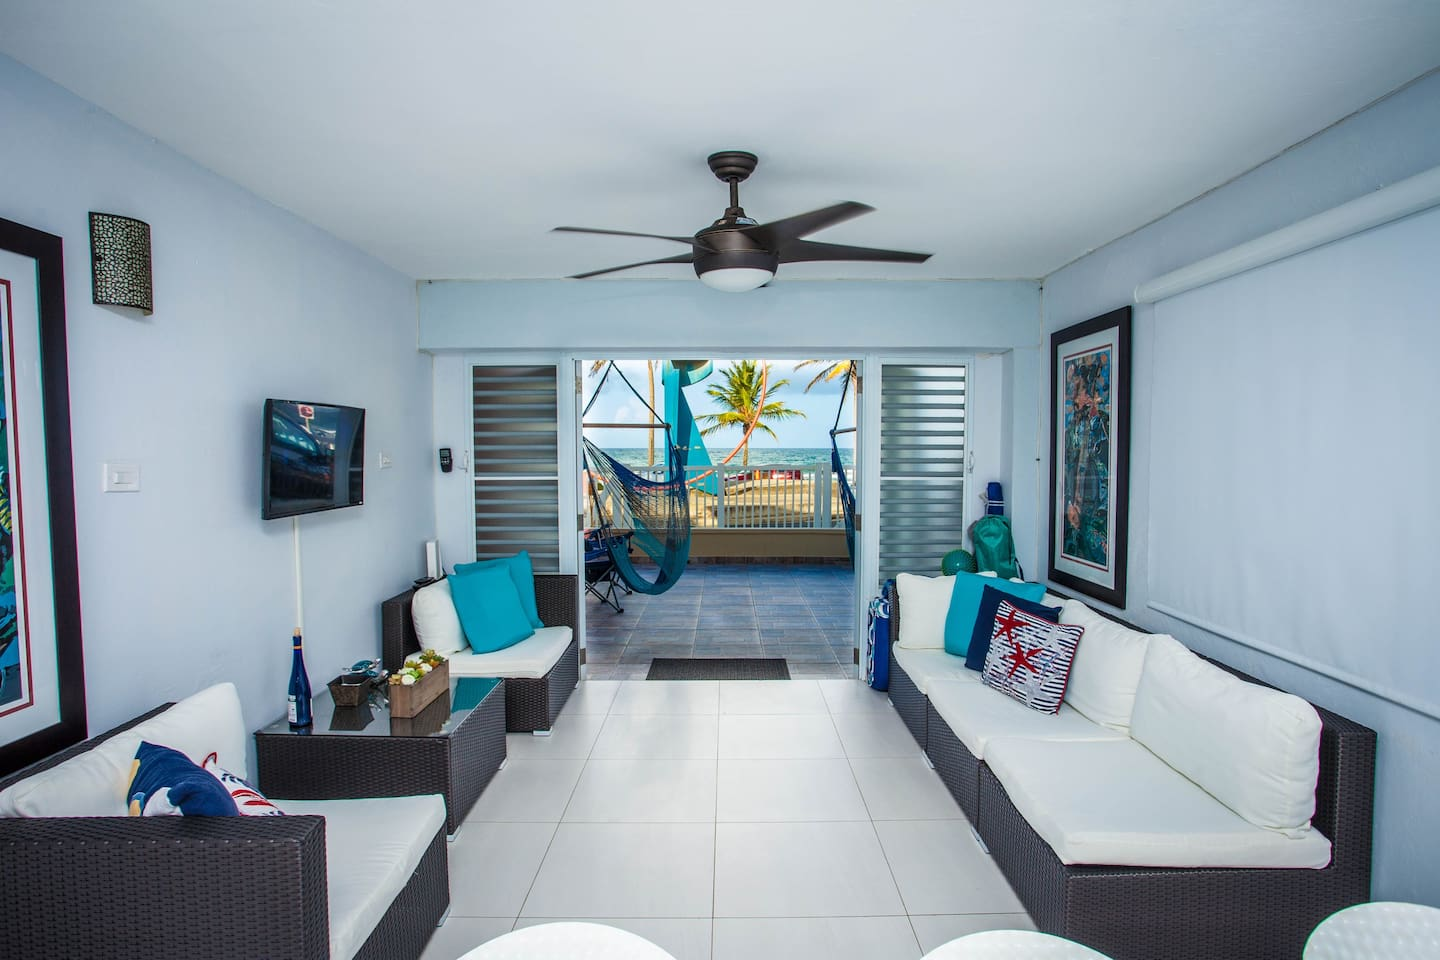 Our Spacious Living Room with amazing breeze and views to the Beach.